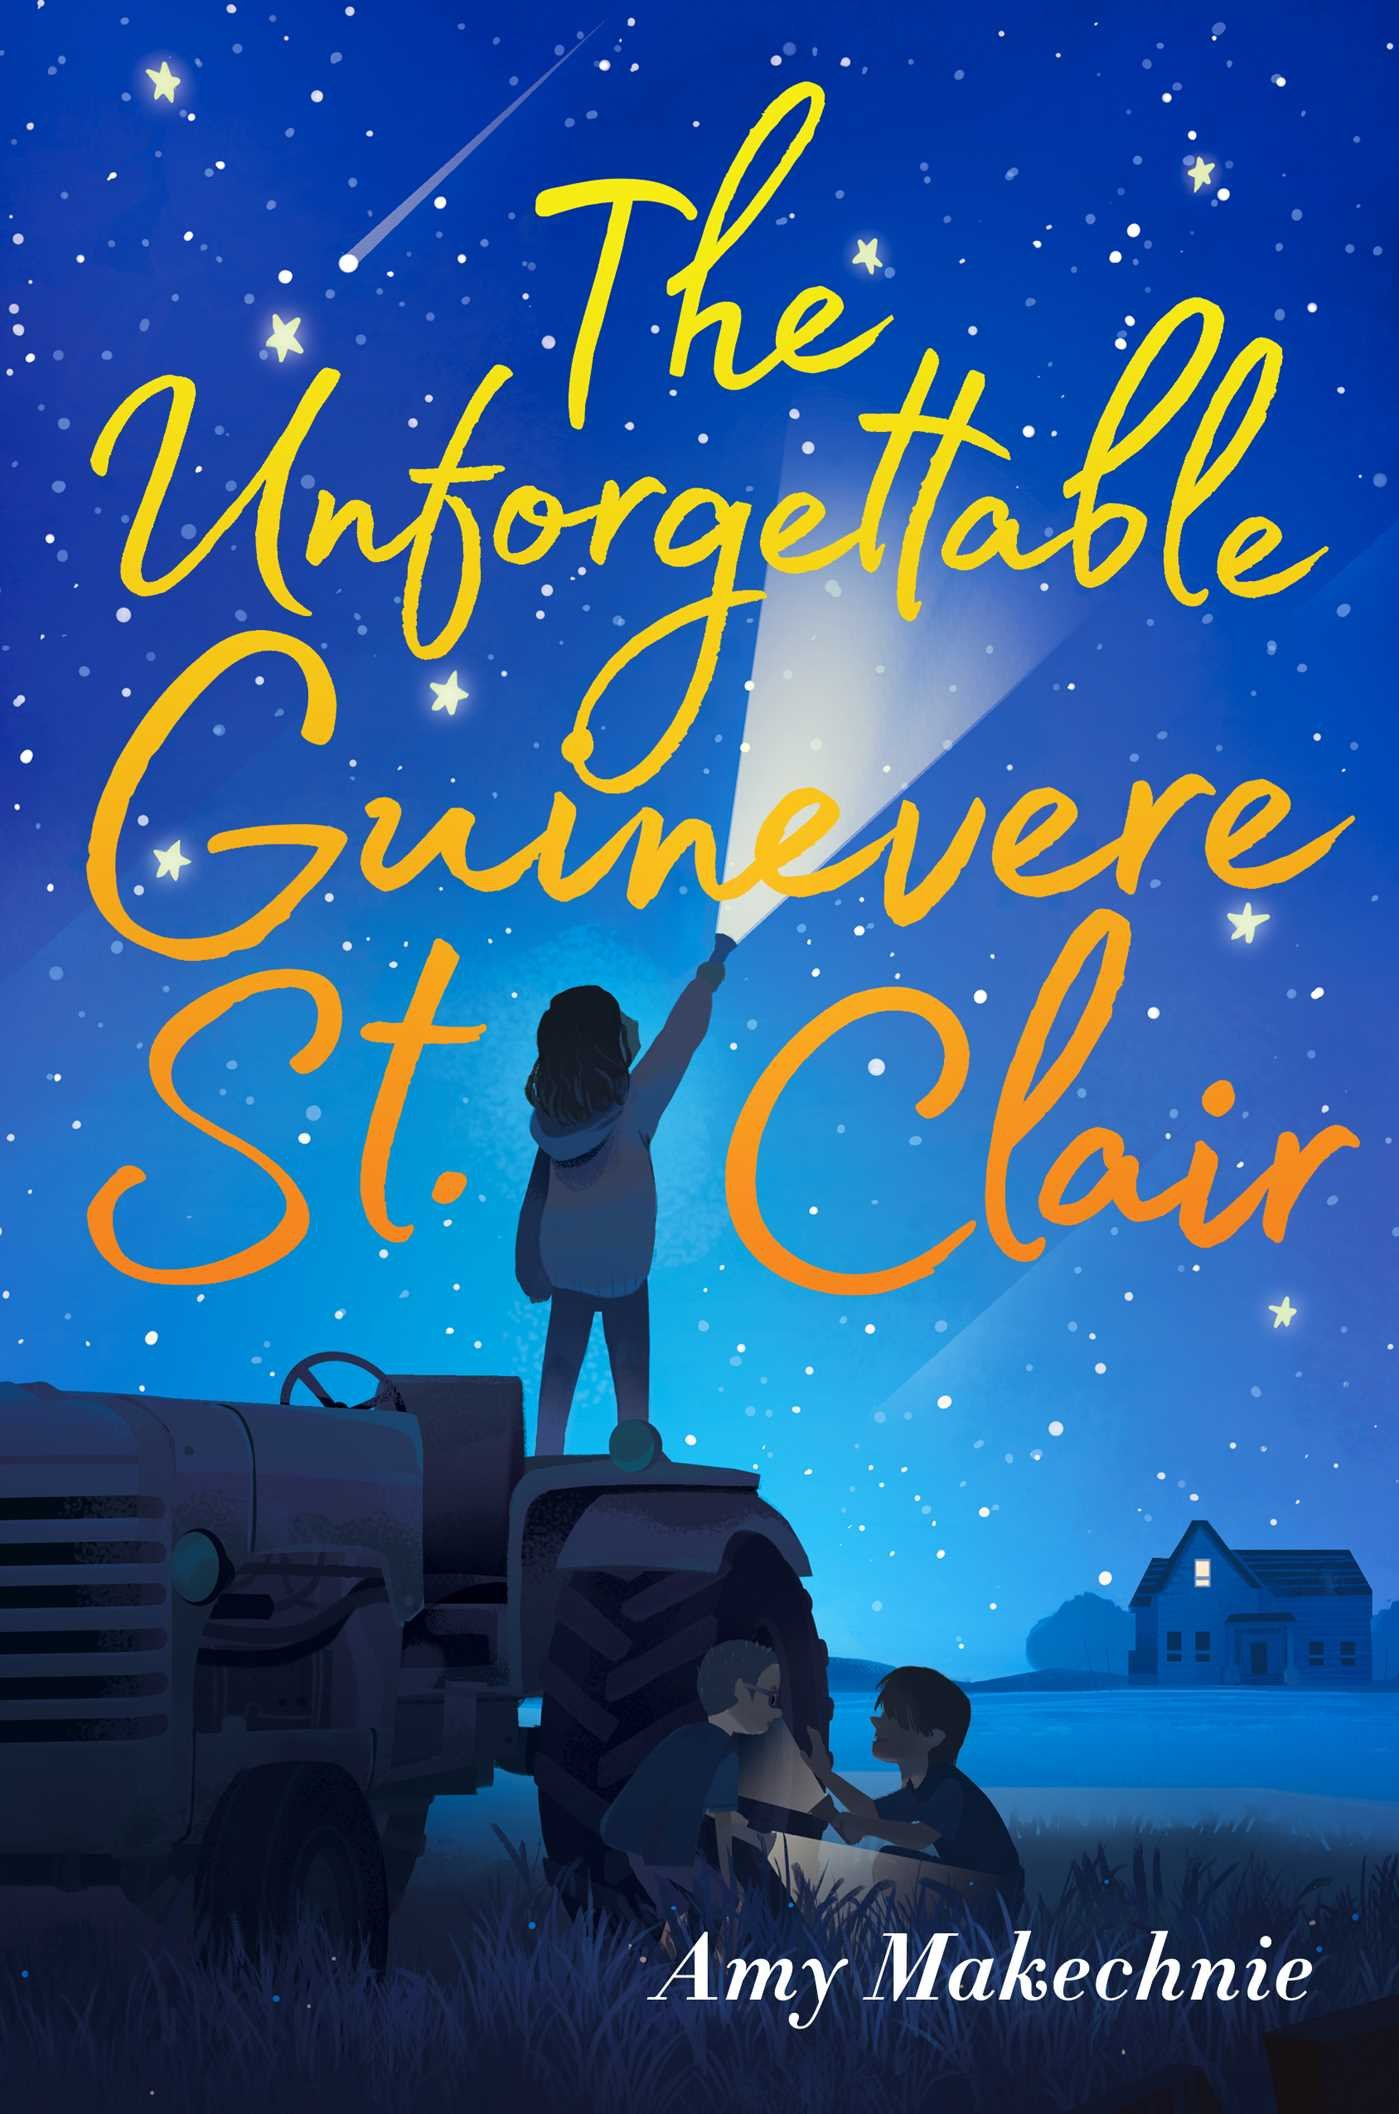 Image result for the unforgettable guinevere st. clair